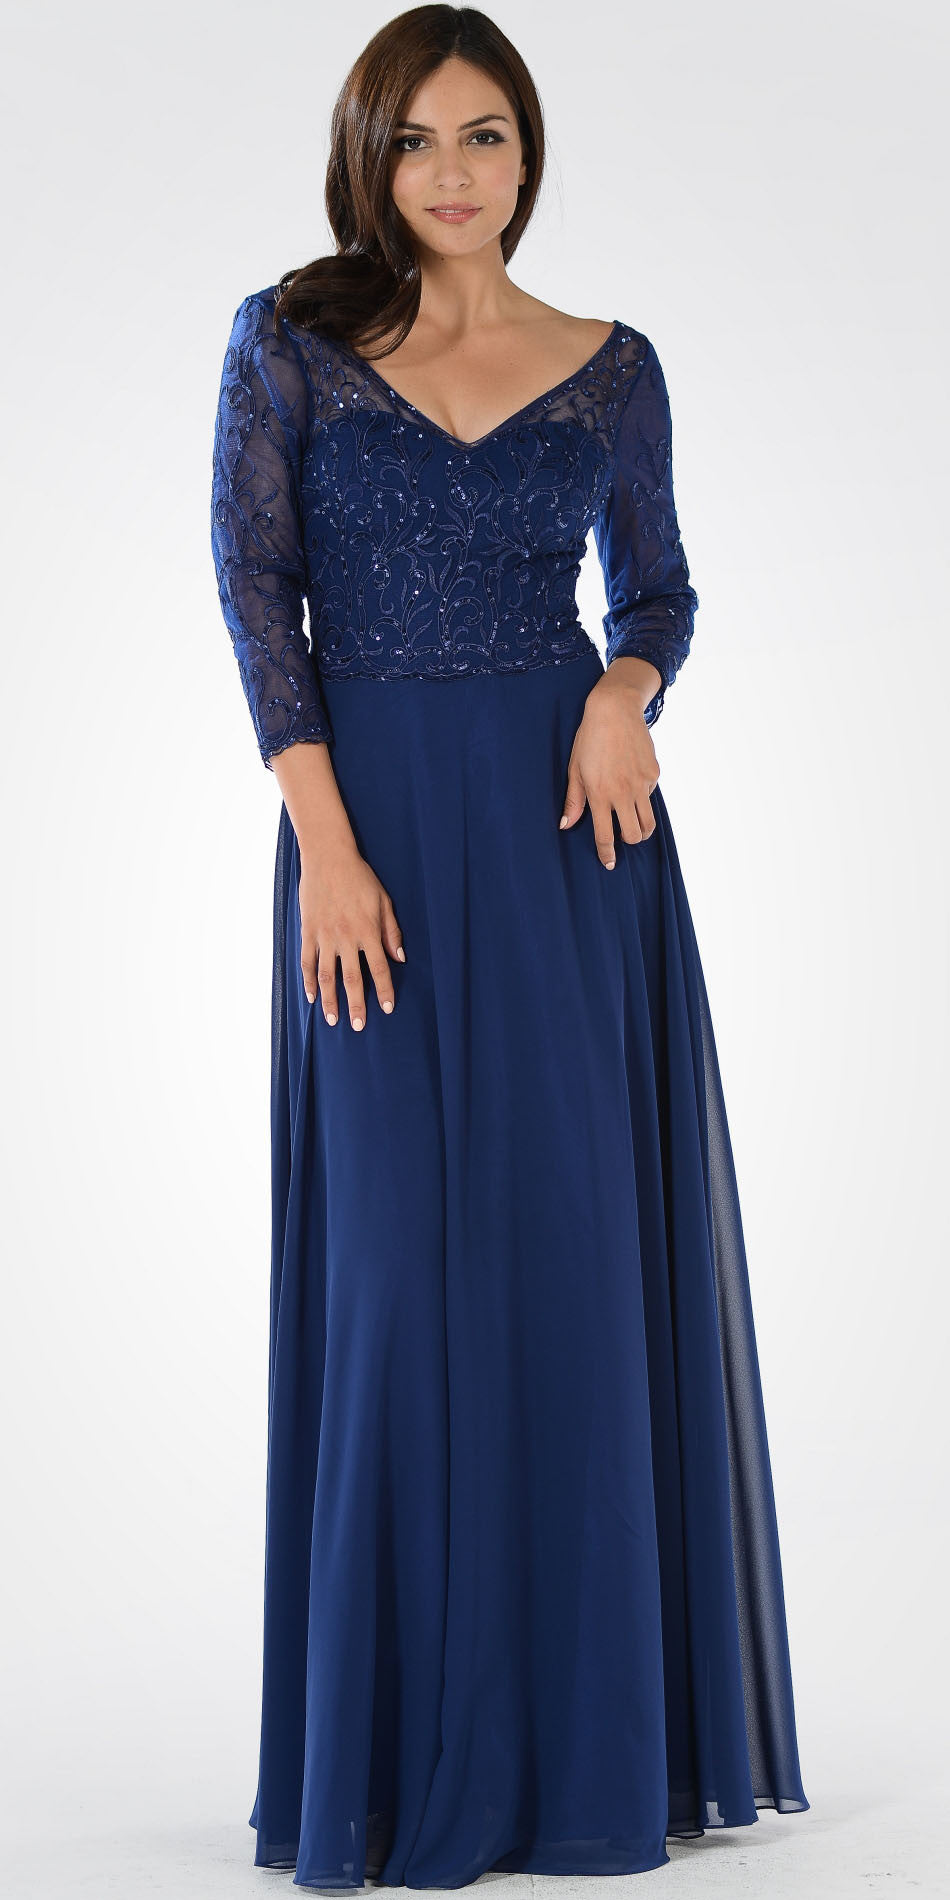 f90236ba8c V-Neck Mid Sleeves Lace Top A-Line Formal Dress Long Navy Blue. Tap to  expand